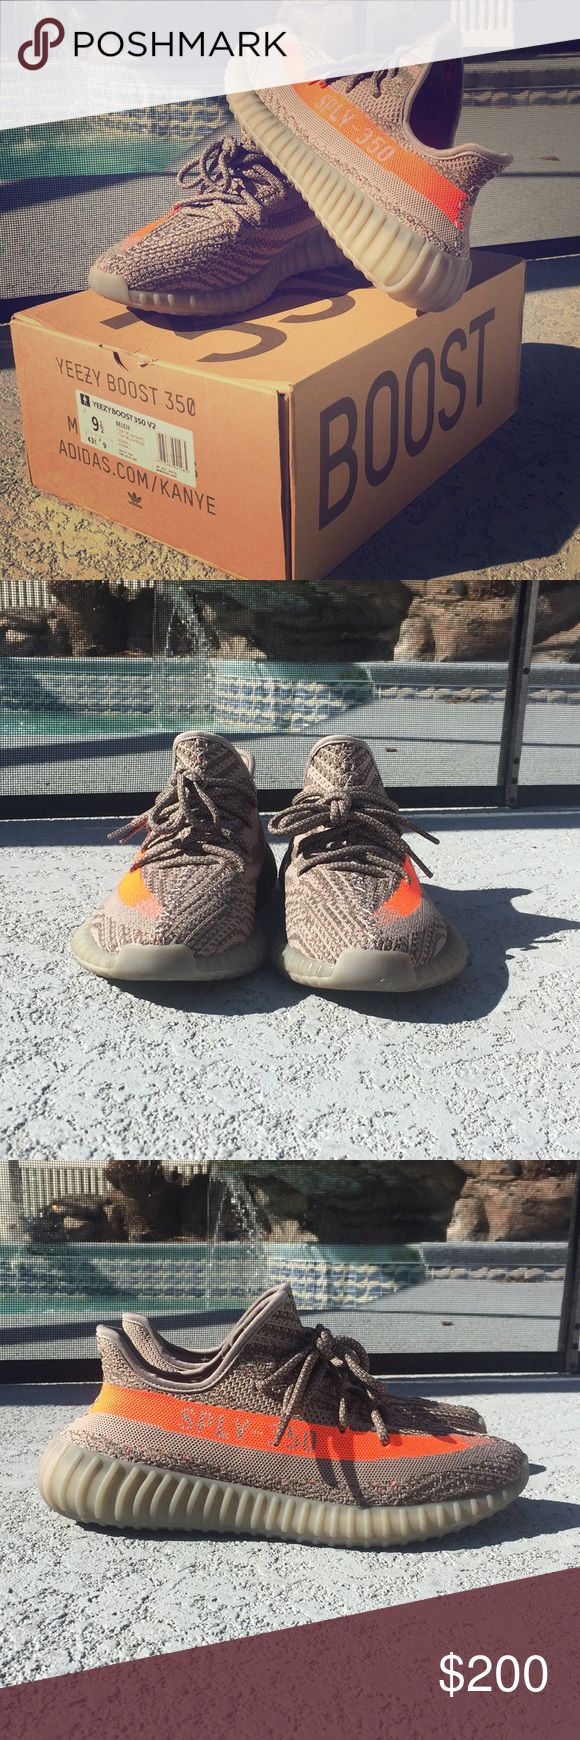 Yeezy Boost 350 V2 (Beluga) Gently Used.. Price reflects authenticity. adidas Shoes Sneakers